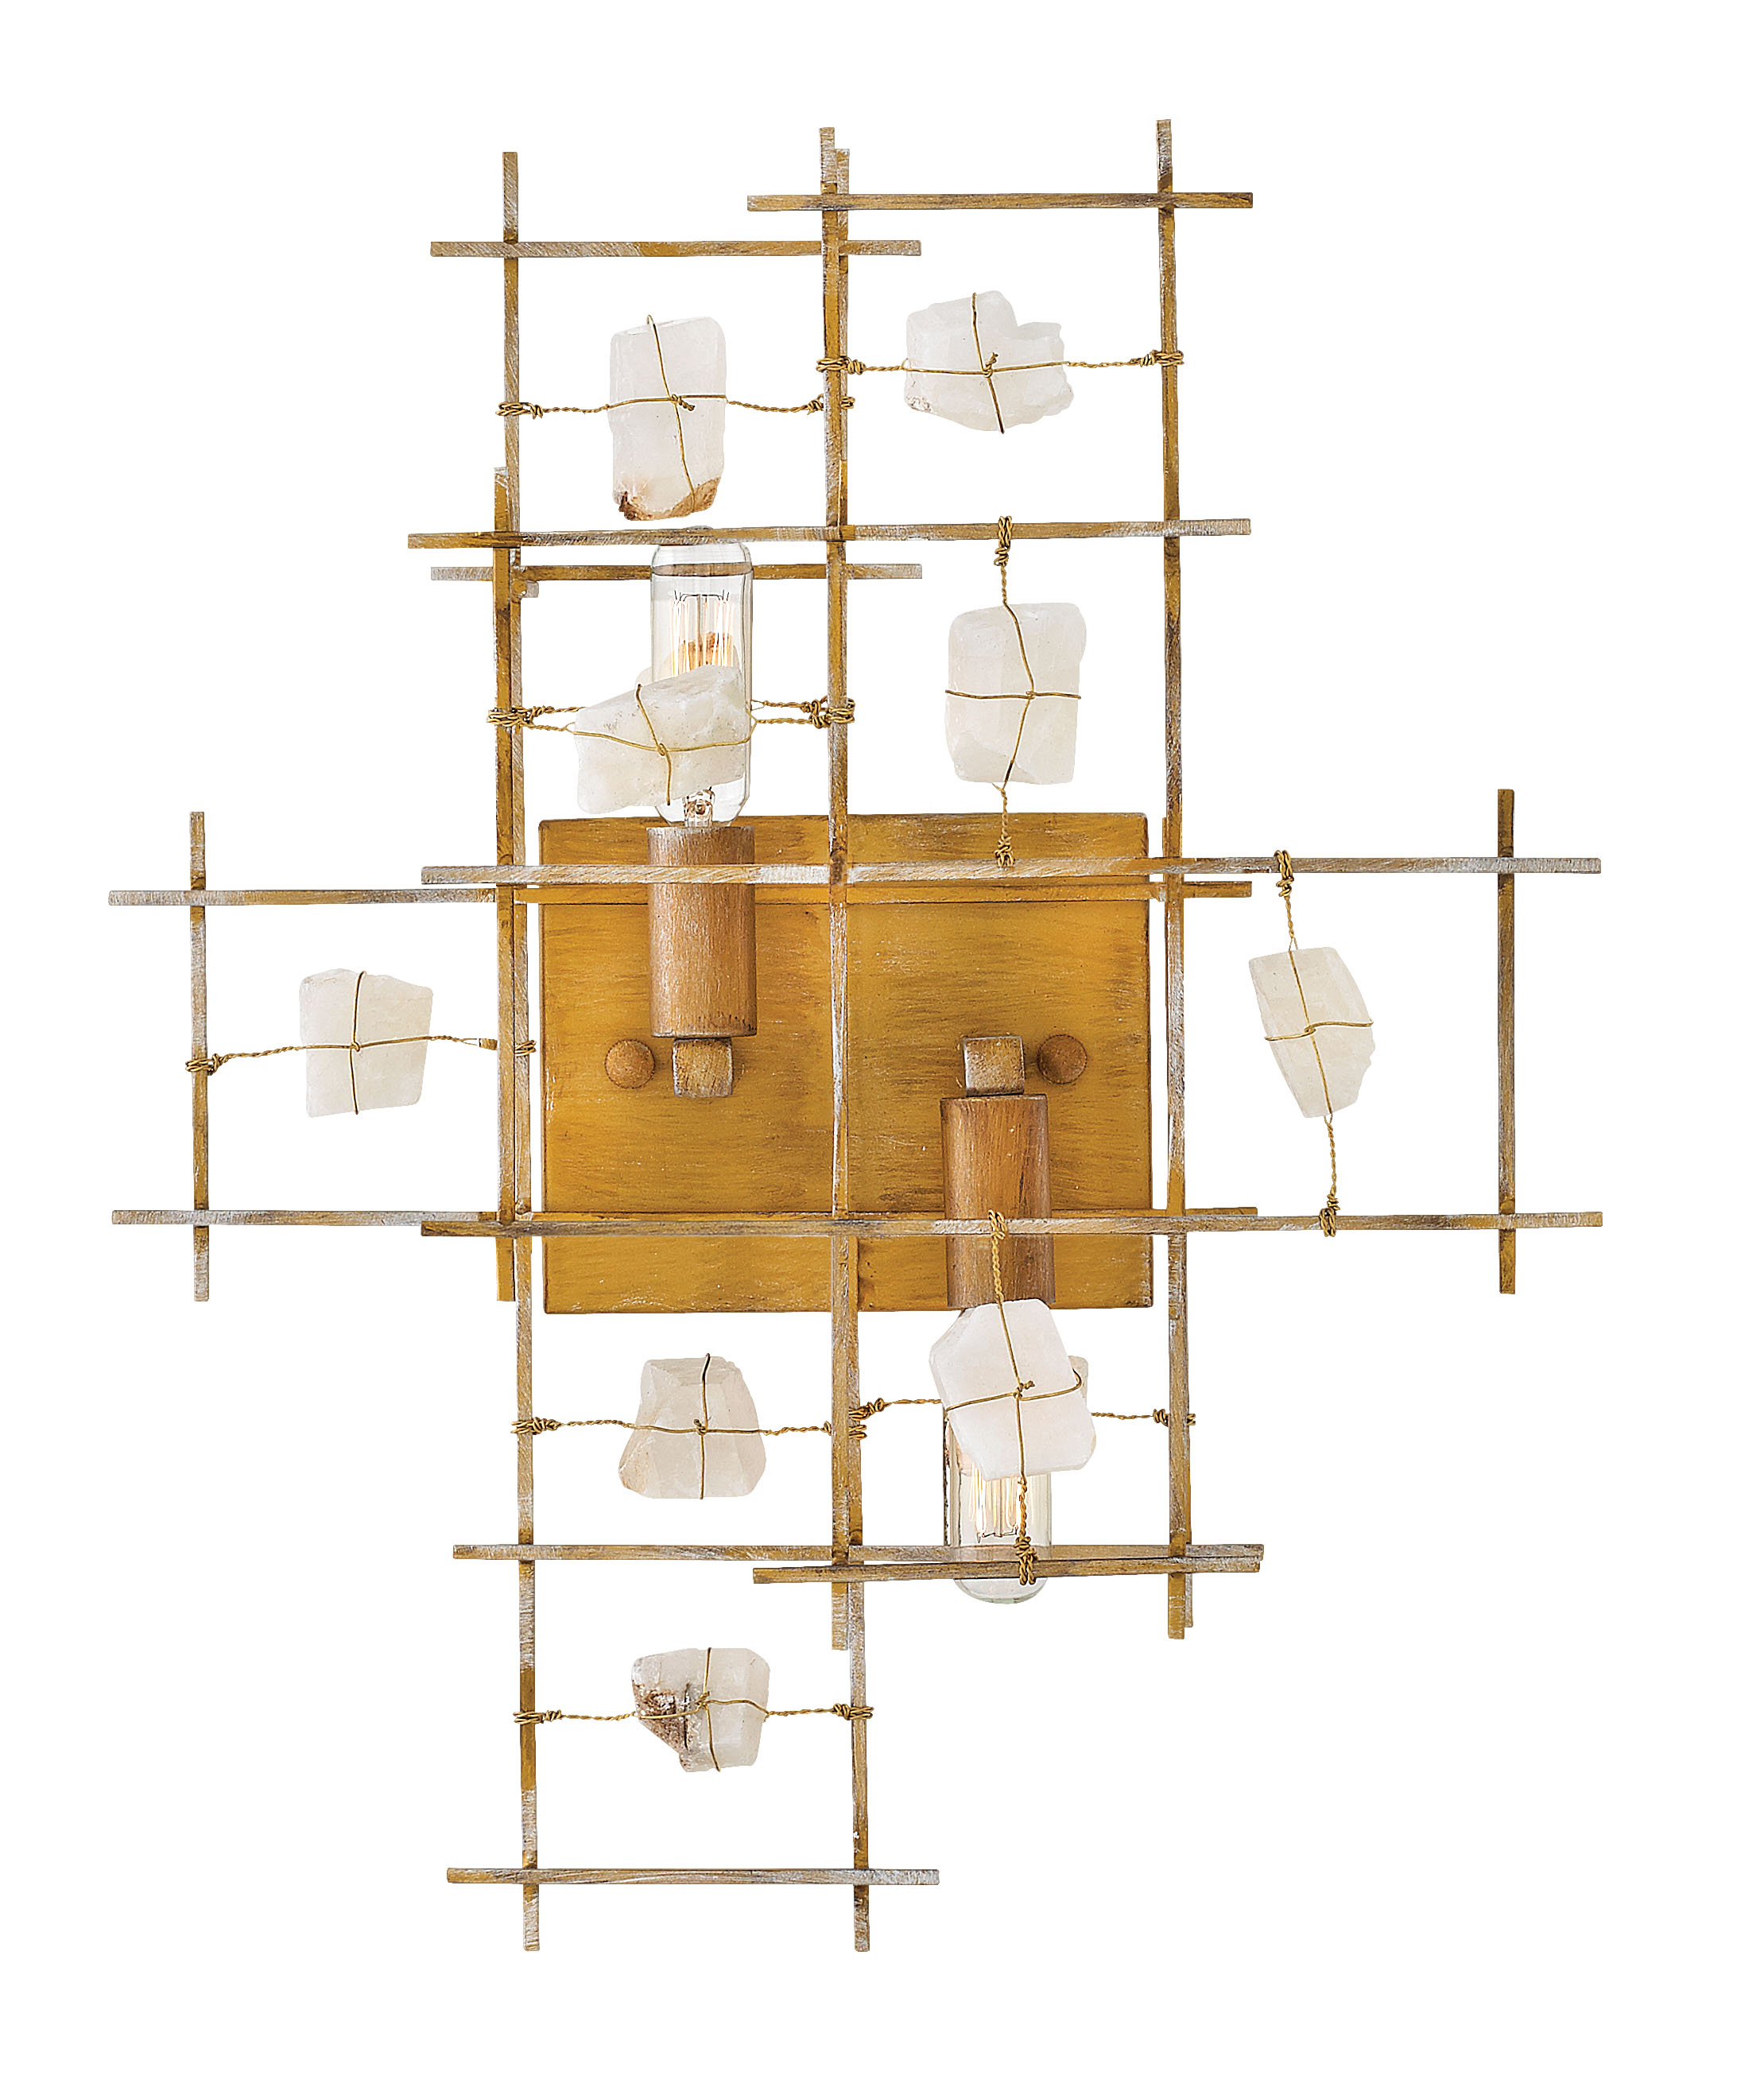 Petra sconce with natural crystals held by wires from Frederick Ramond for Hinkley Lighting